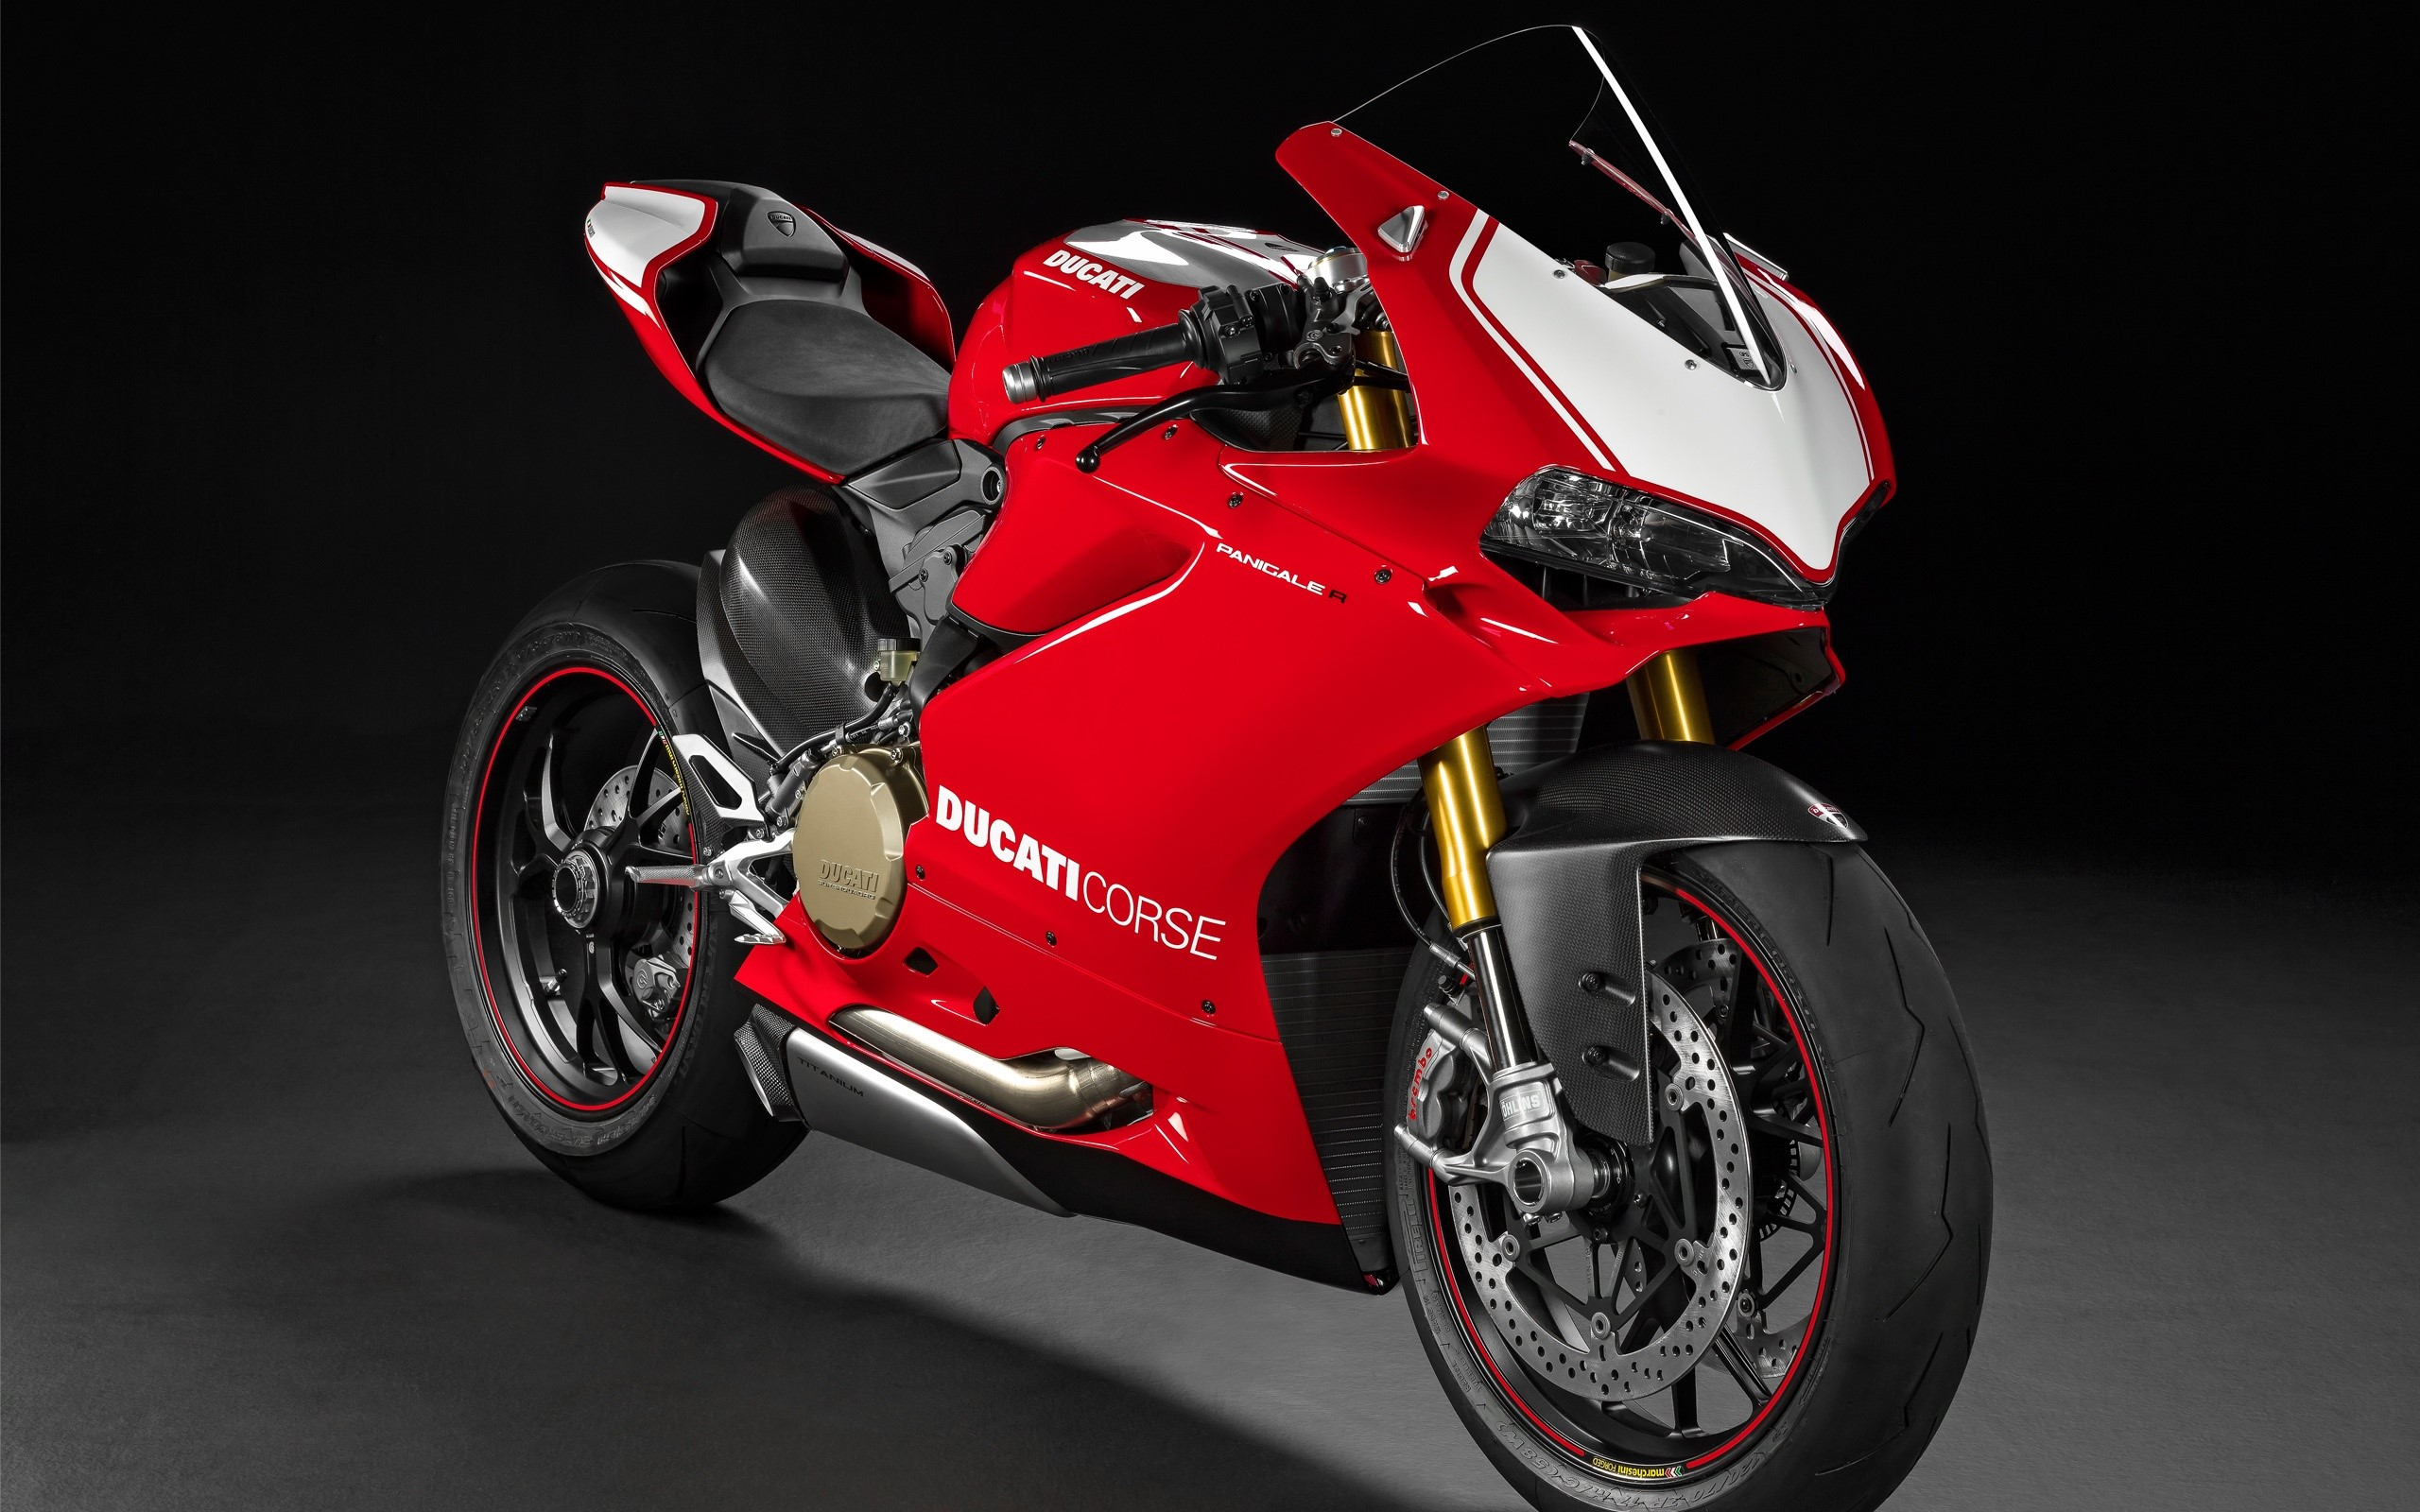 Wallpaper Ducati Panigale R superbike red